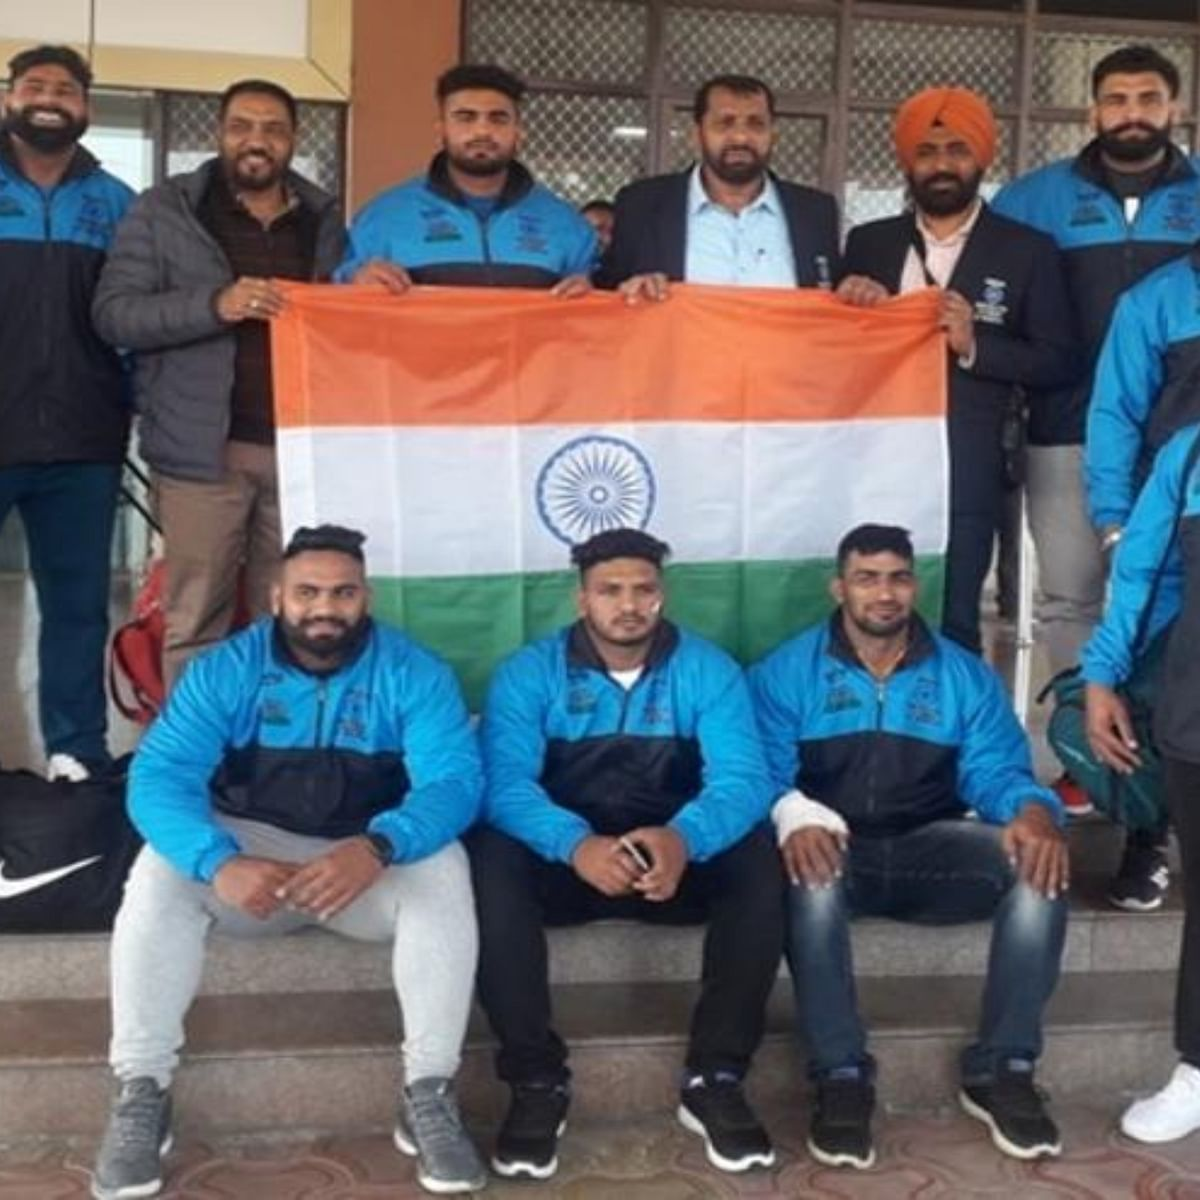 Kabaddi players in Pakistan sent by faction controlled by BJP ally Sukhbir Badal